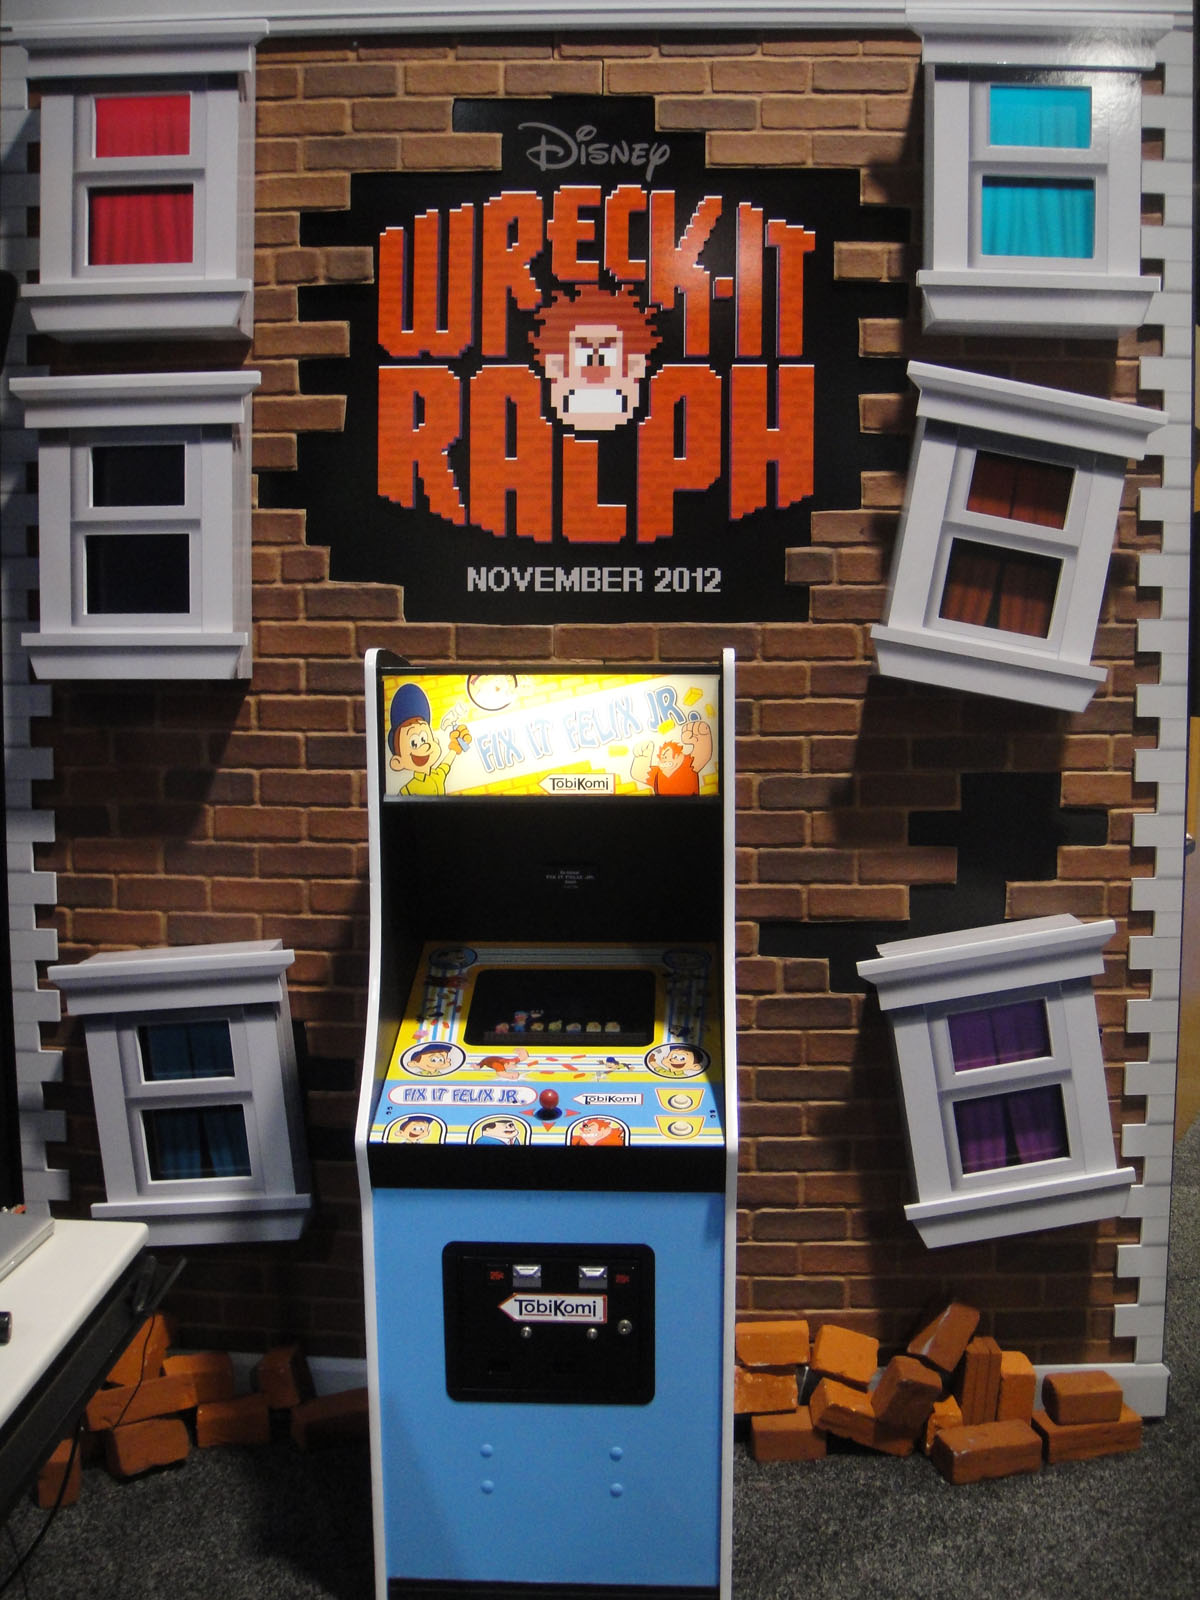 http://upload.wikimedia.org/wikipedia/commons/3/37/Wreckit_ralph_fixit_fred_jr_arcade_machine_e3_2012.jpg